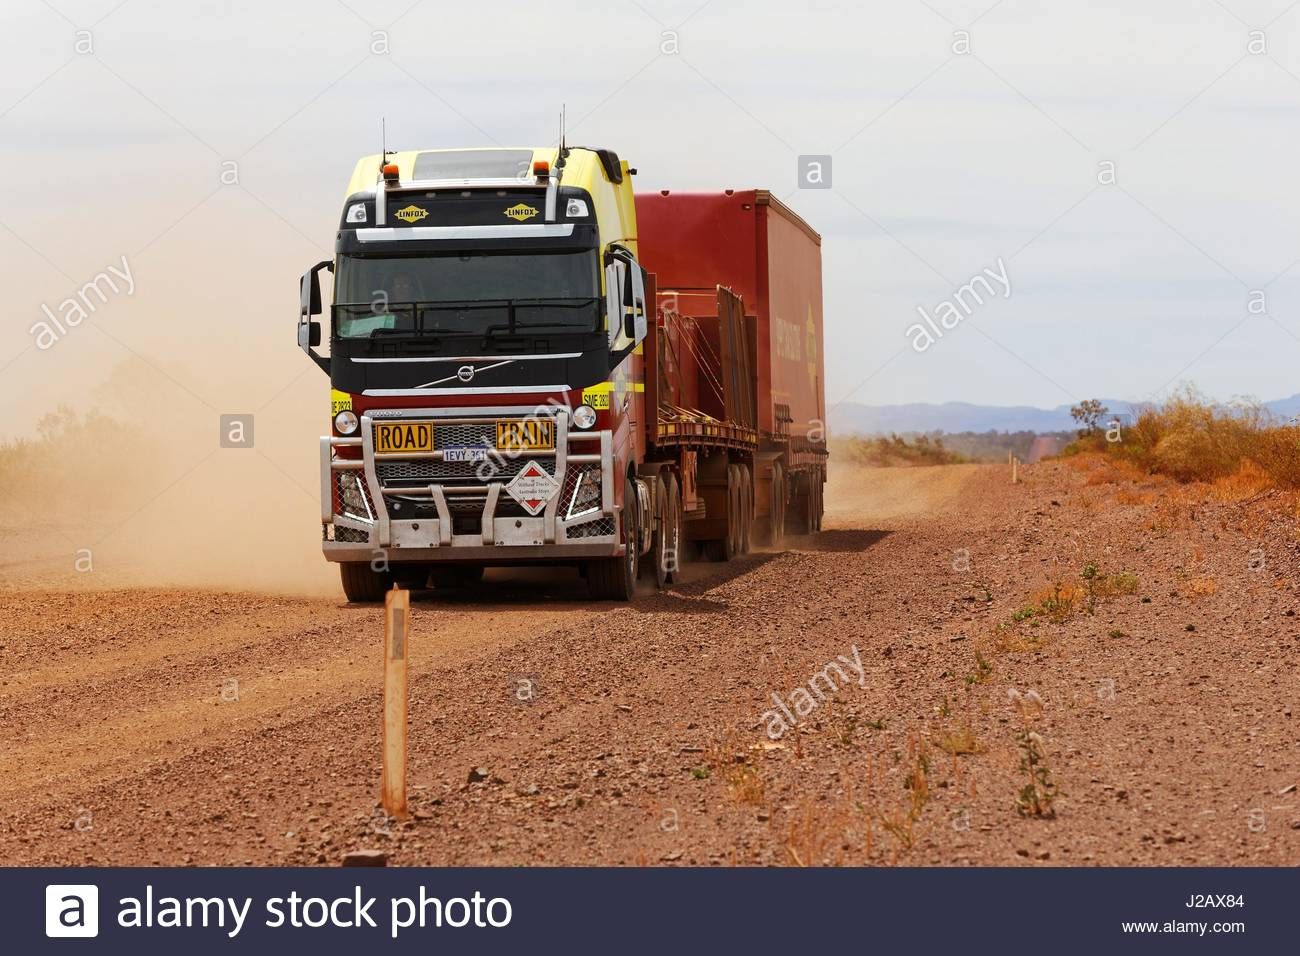 volvo-fh16-road-train-truck-on-outback-d